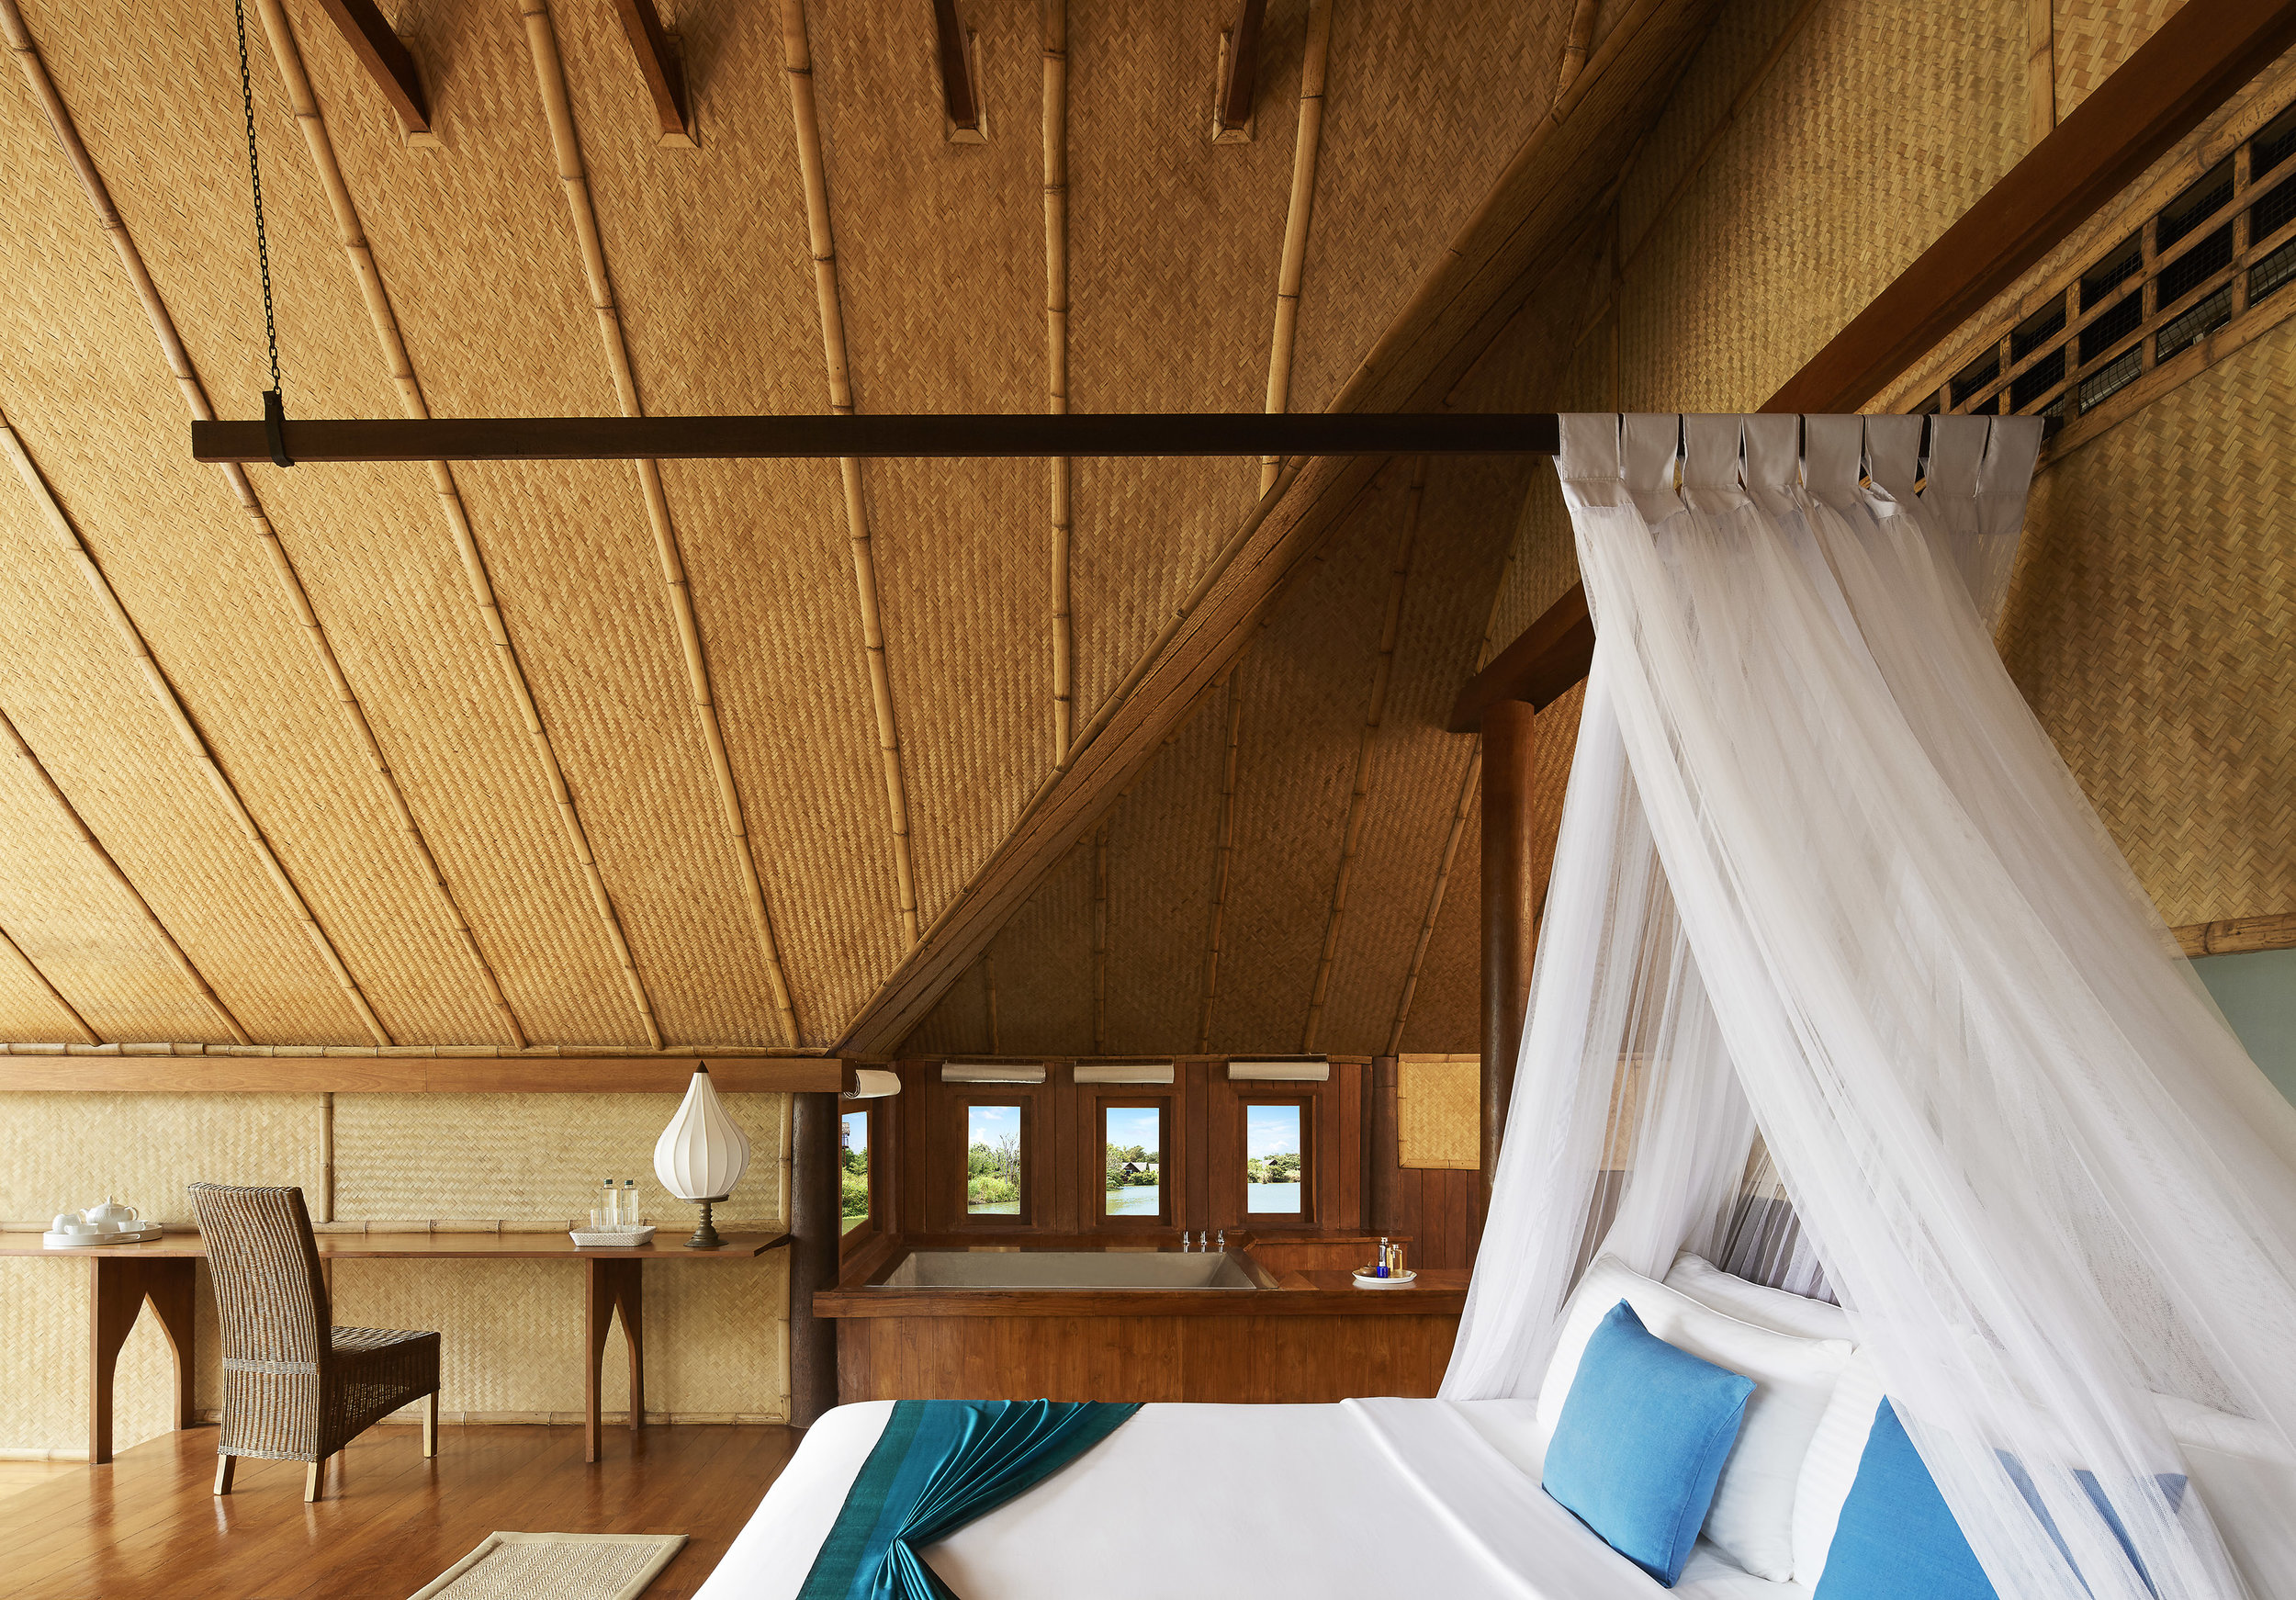 invite-to-paradise-sri-lanka-specialists-experts-travel-agent-tour-operator-jetwing-viluyana-hotel-cultural-triangle-dwelling-bedroom-3.jpg